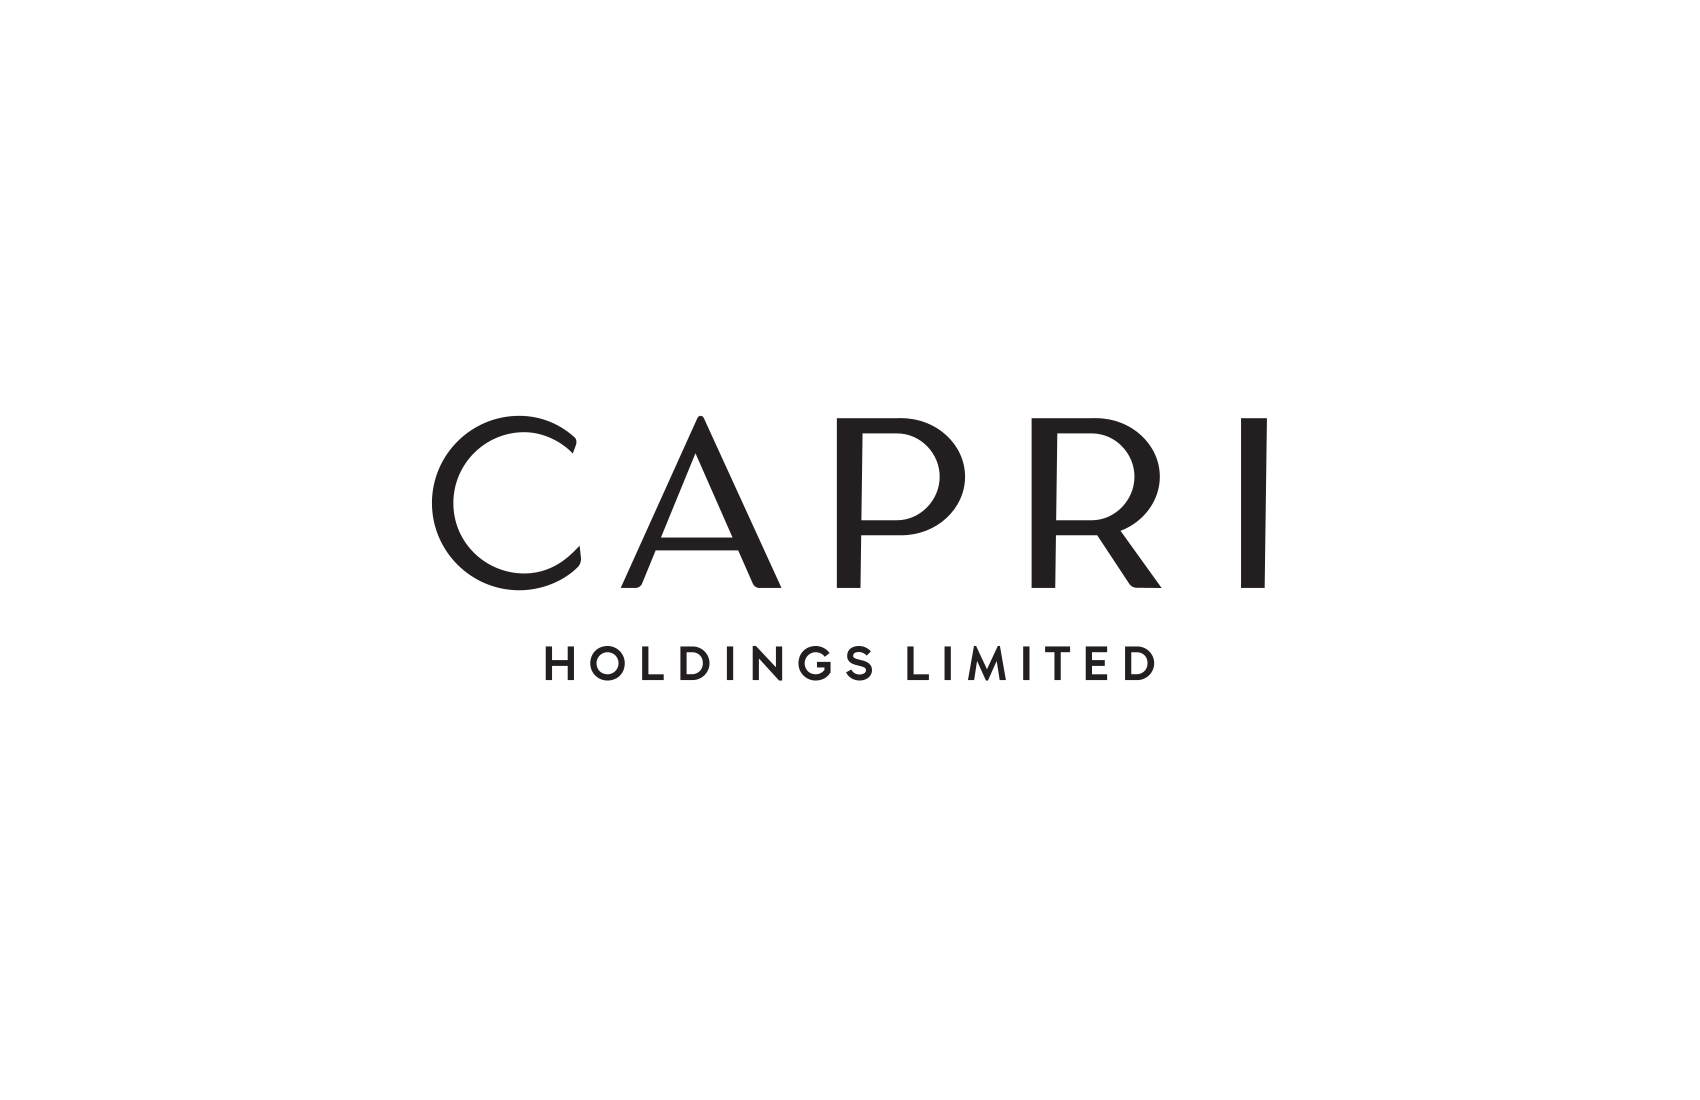 Capri Holdings Limited - Overview